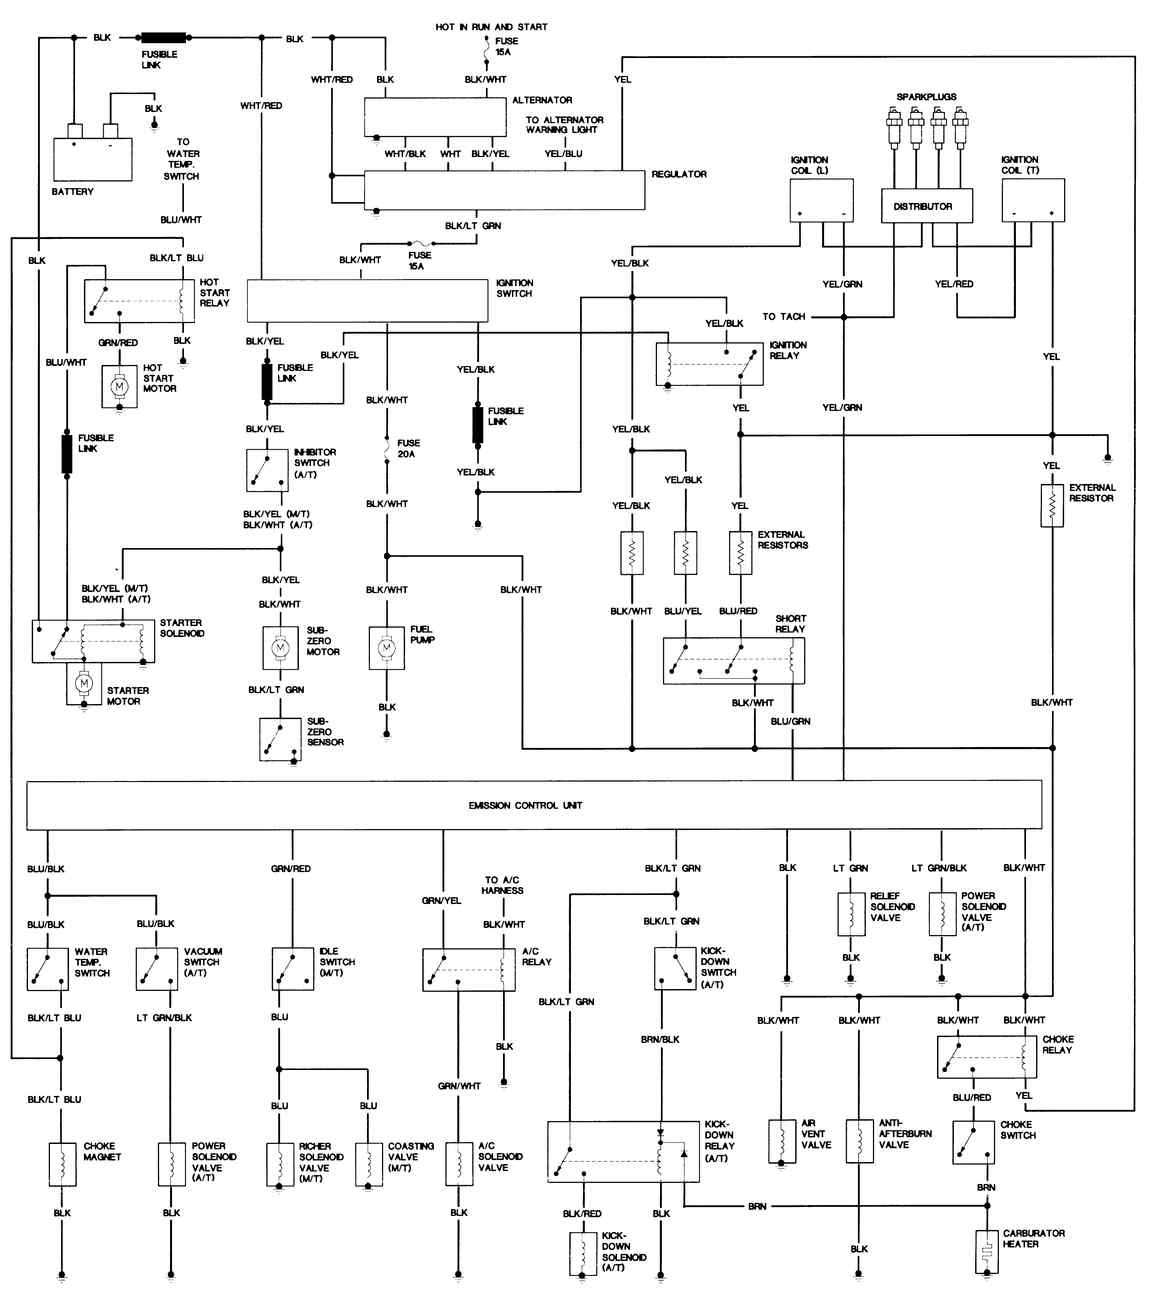 mazda 323 alternator wiring diagram 1996 mazda 626 wiring diagrams wiring diagrams